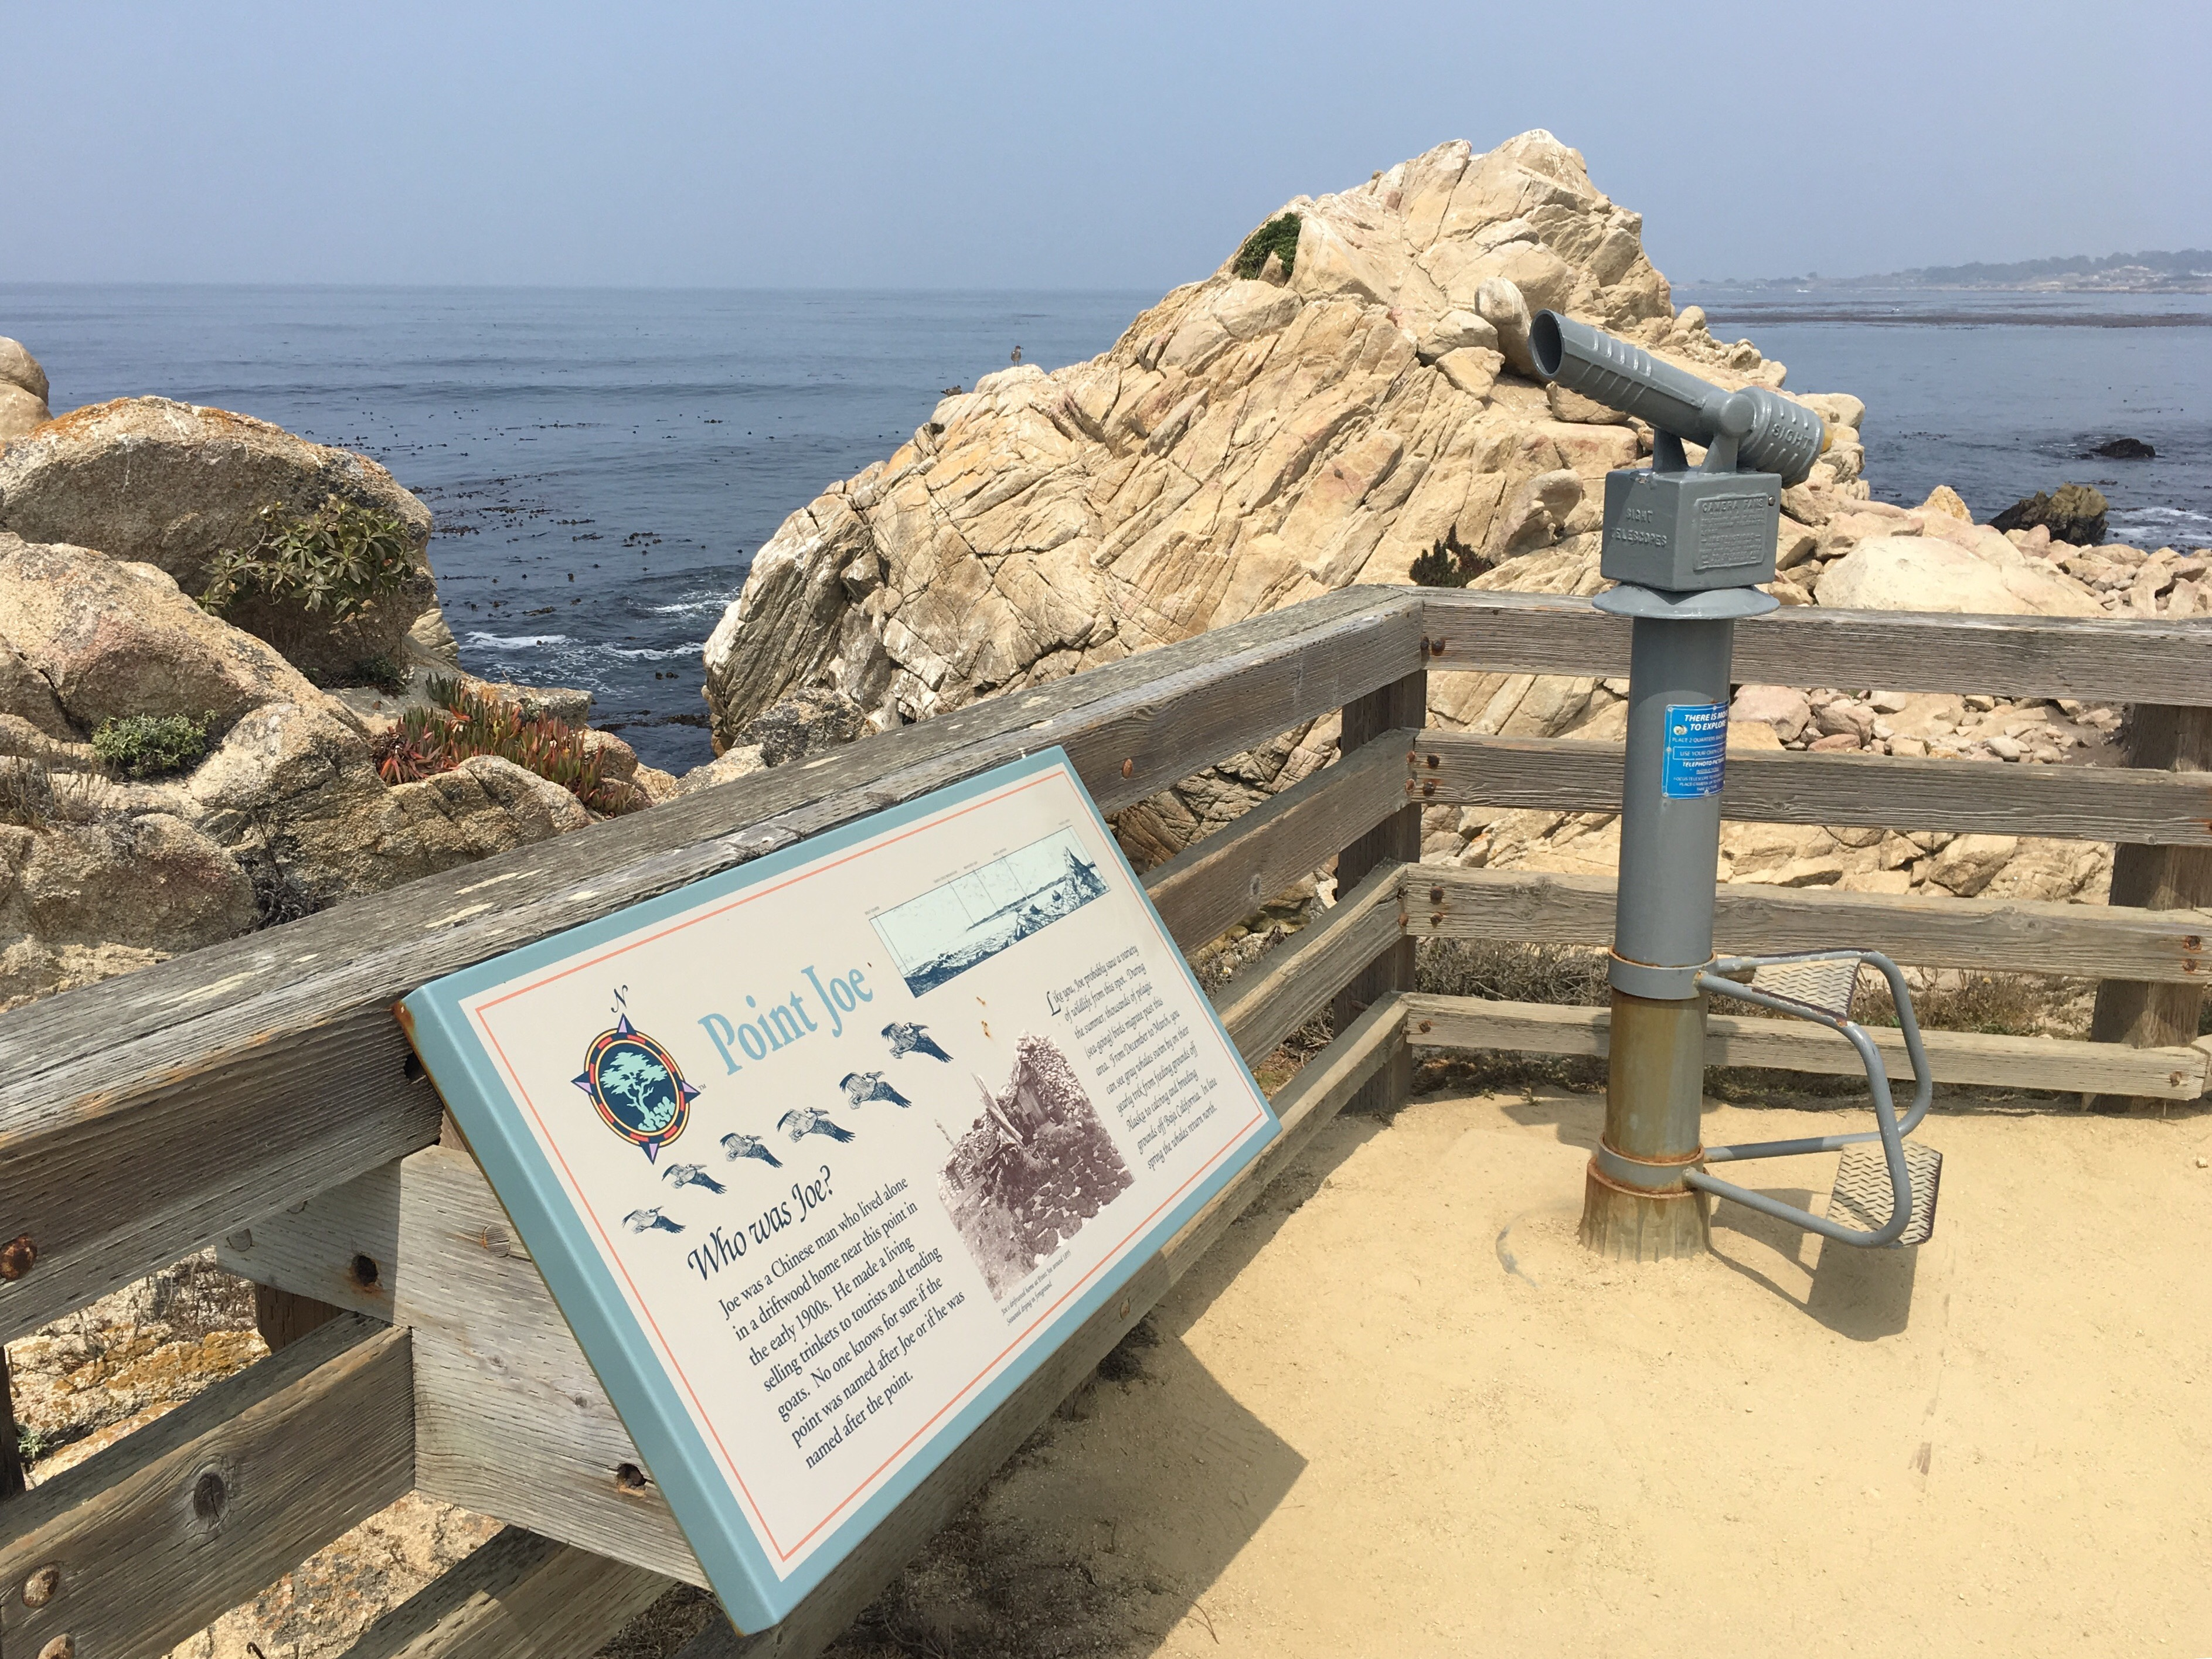 Point Joe on 17-Mile Drive